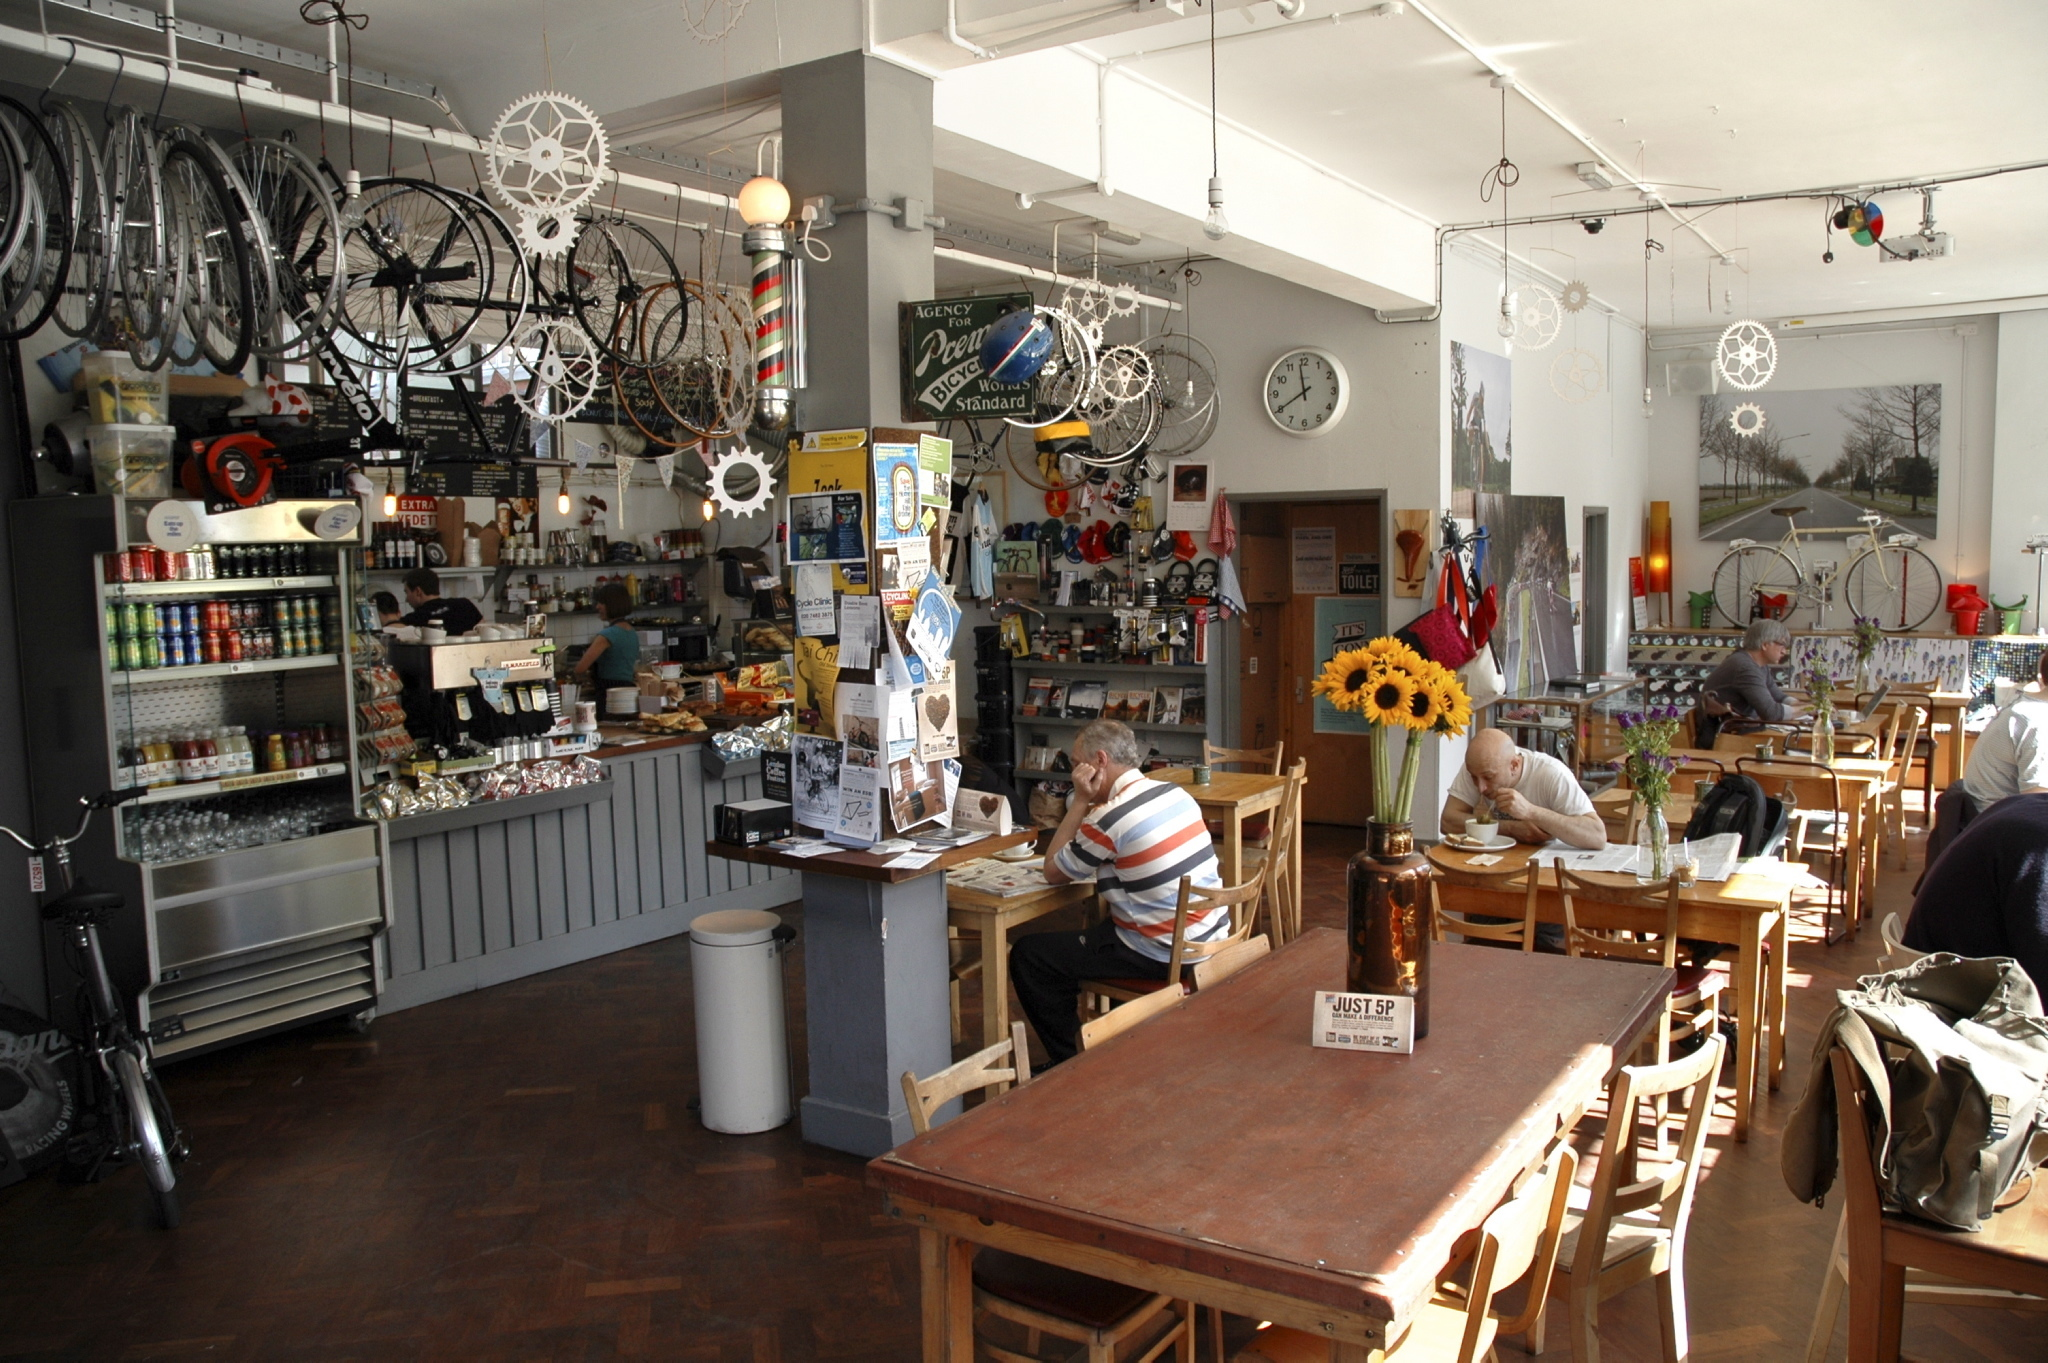 Get your caffeine fix and your bike fixed at Look Mum No Hands